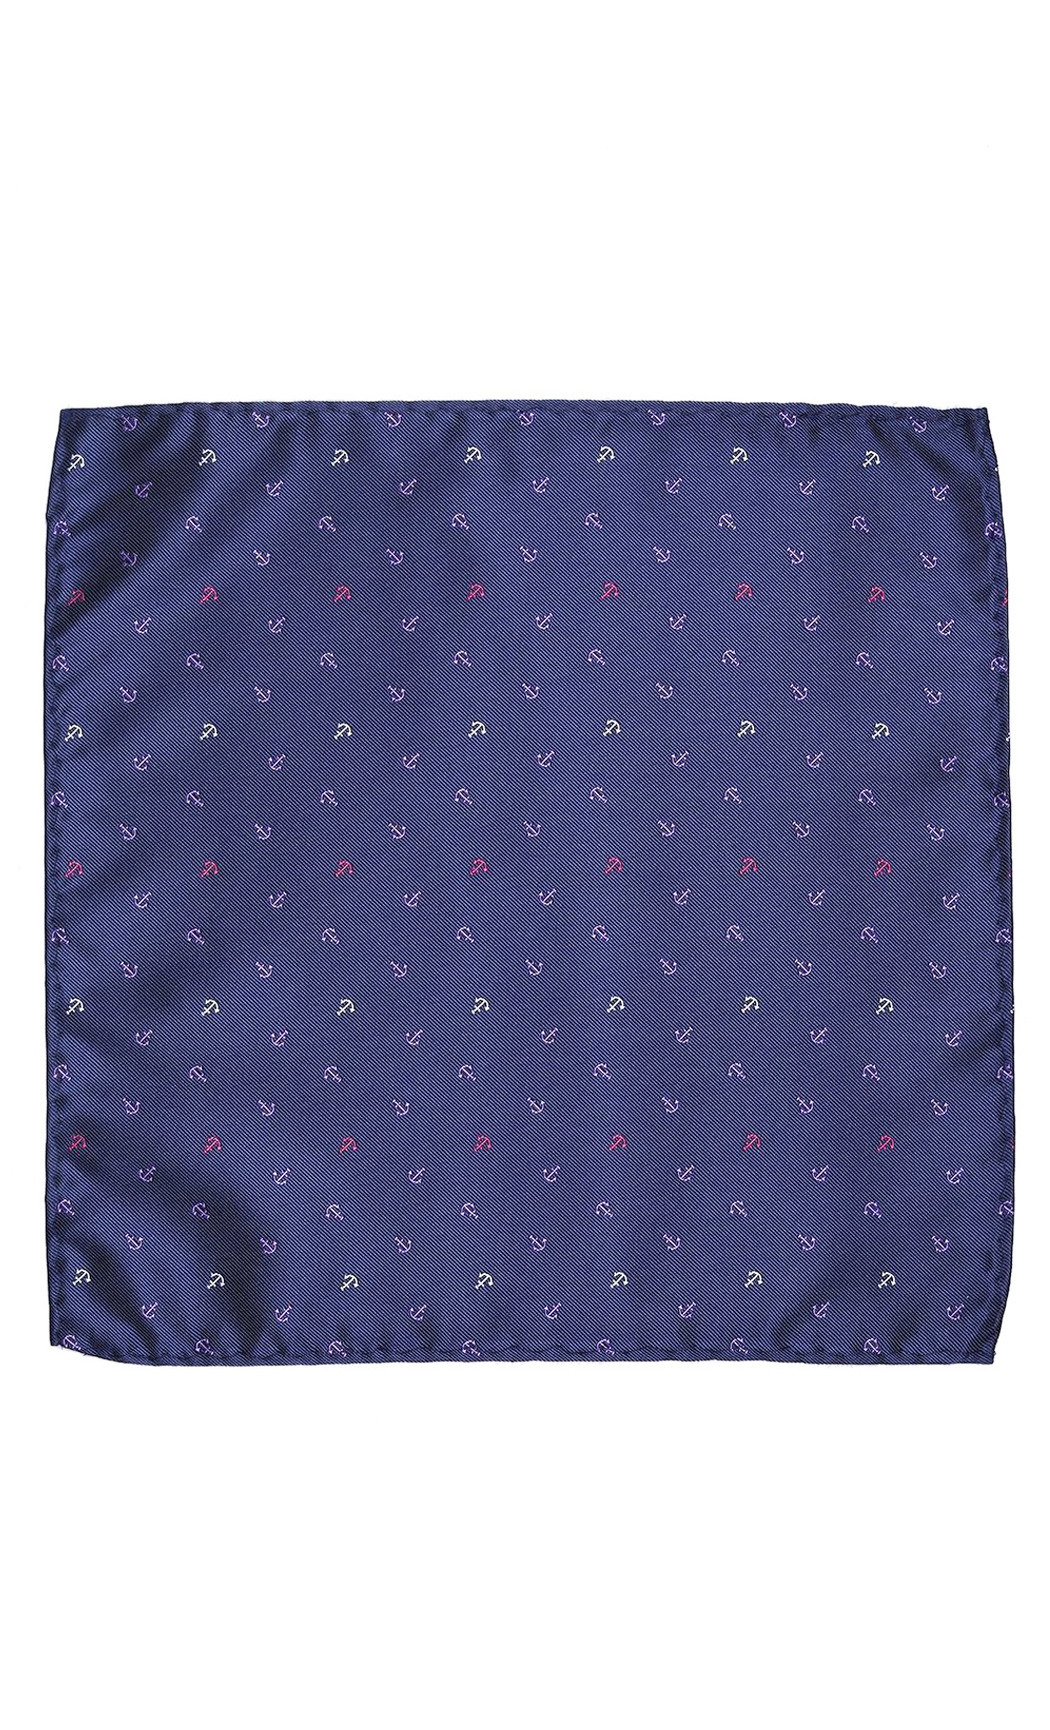 Blue Anchor Woven Pocket Square. Buy Online